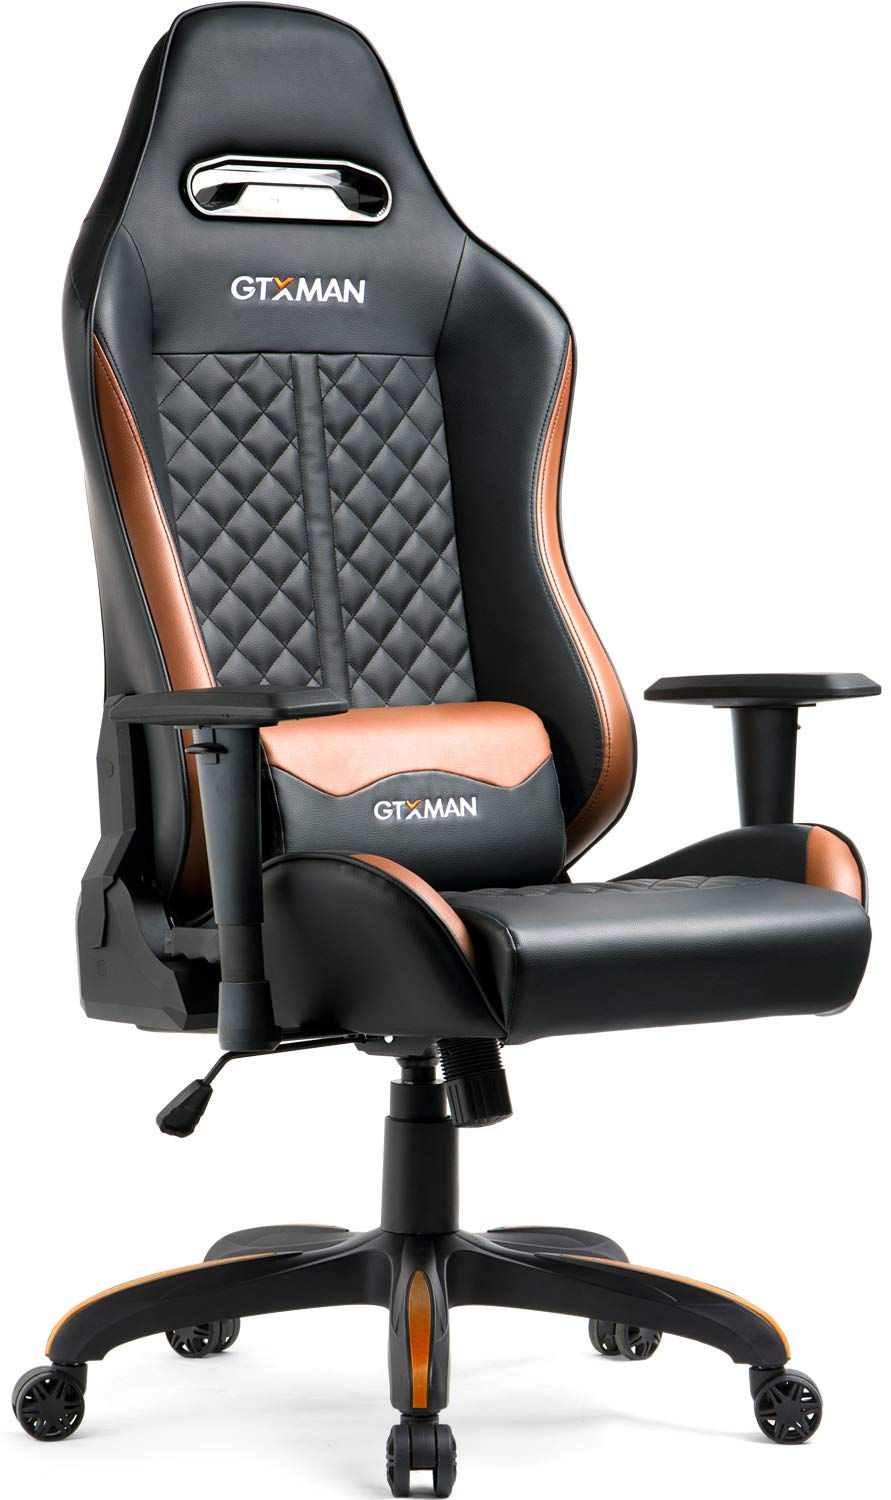 GTXMAN Gaming Chair Ergonomic High Back PU Leather Racing Style with Adjustable Armrest and Back Recliner Swivel Rocker Office Chair Brown by GTXMAN